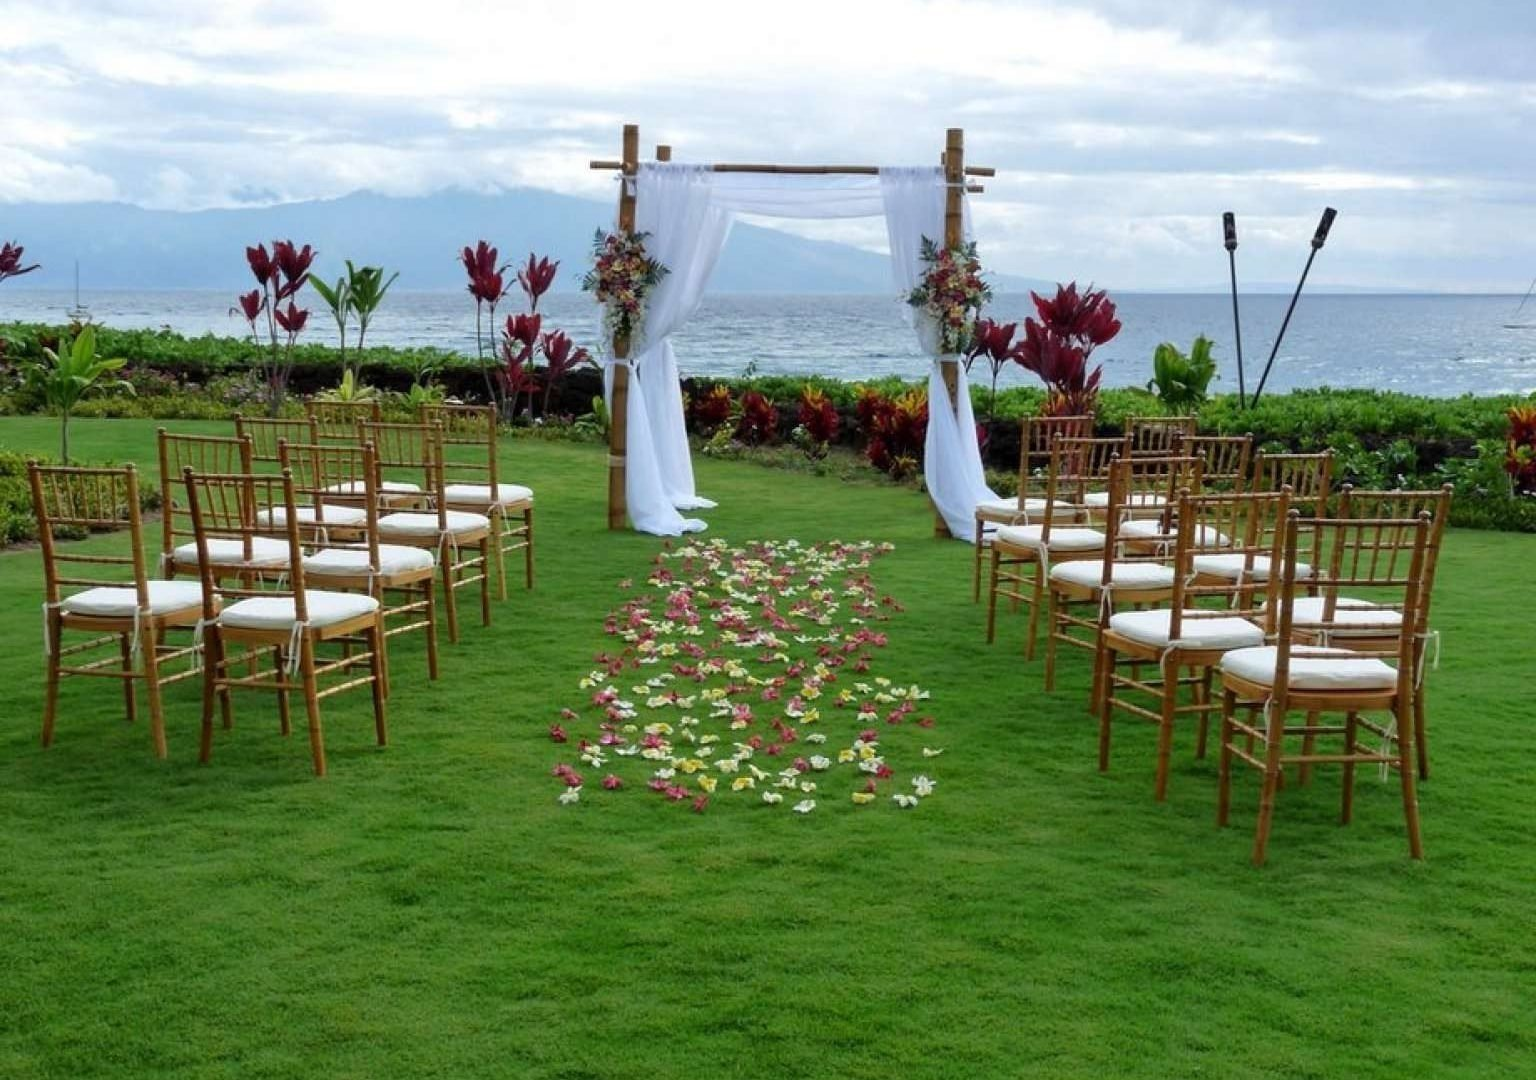 10 Beautiful Affordable Wedding Ideas Low Budget cheap outside wedding ideas best outdoor decorations 1024x768 low